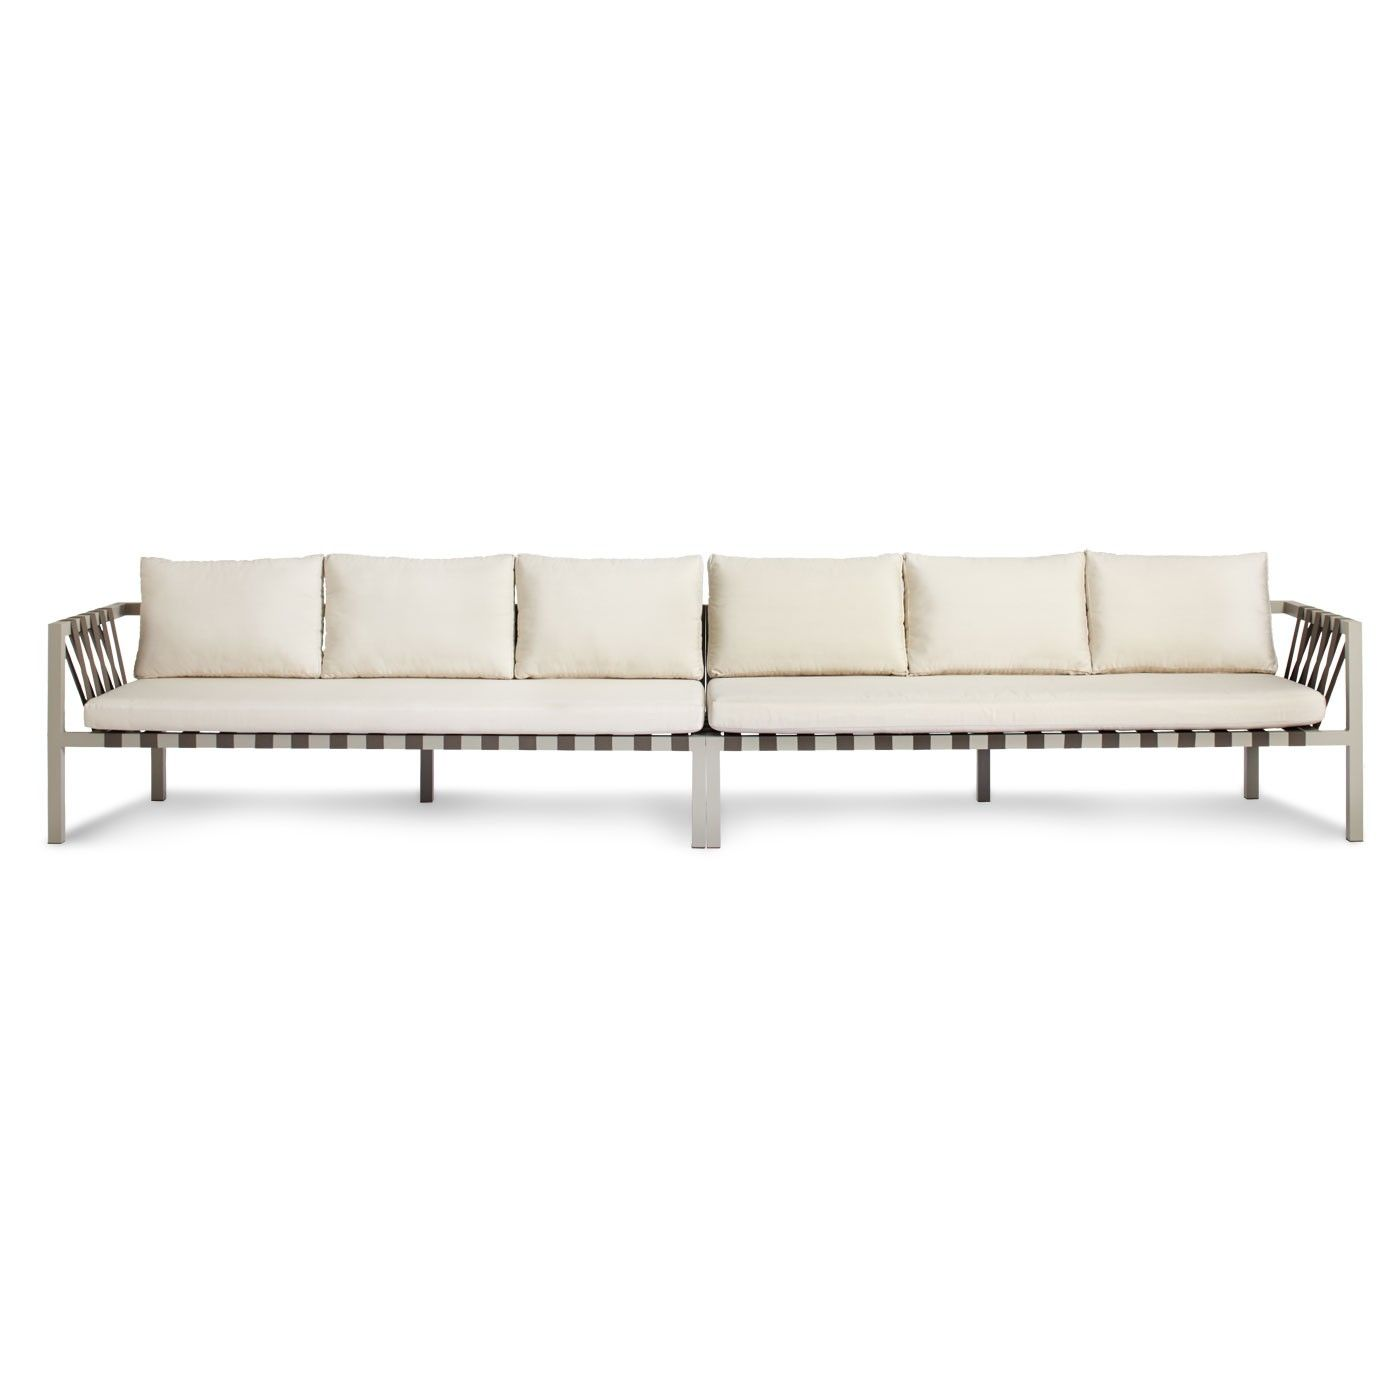 Madrid Taupe Beige Ultra Modern Living Room Furniture 3: Jibe Outdoor Extra Long Sectional Sofa